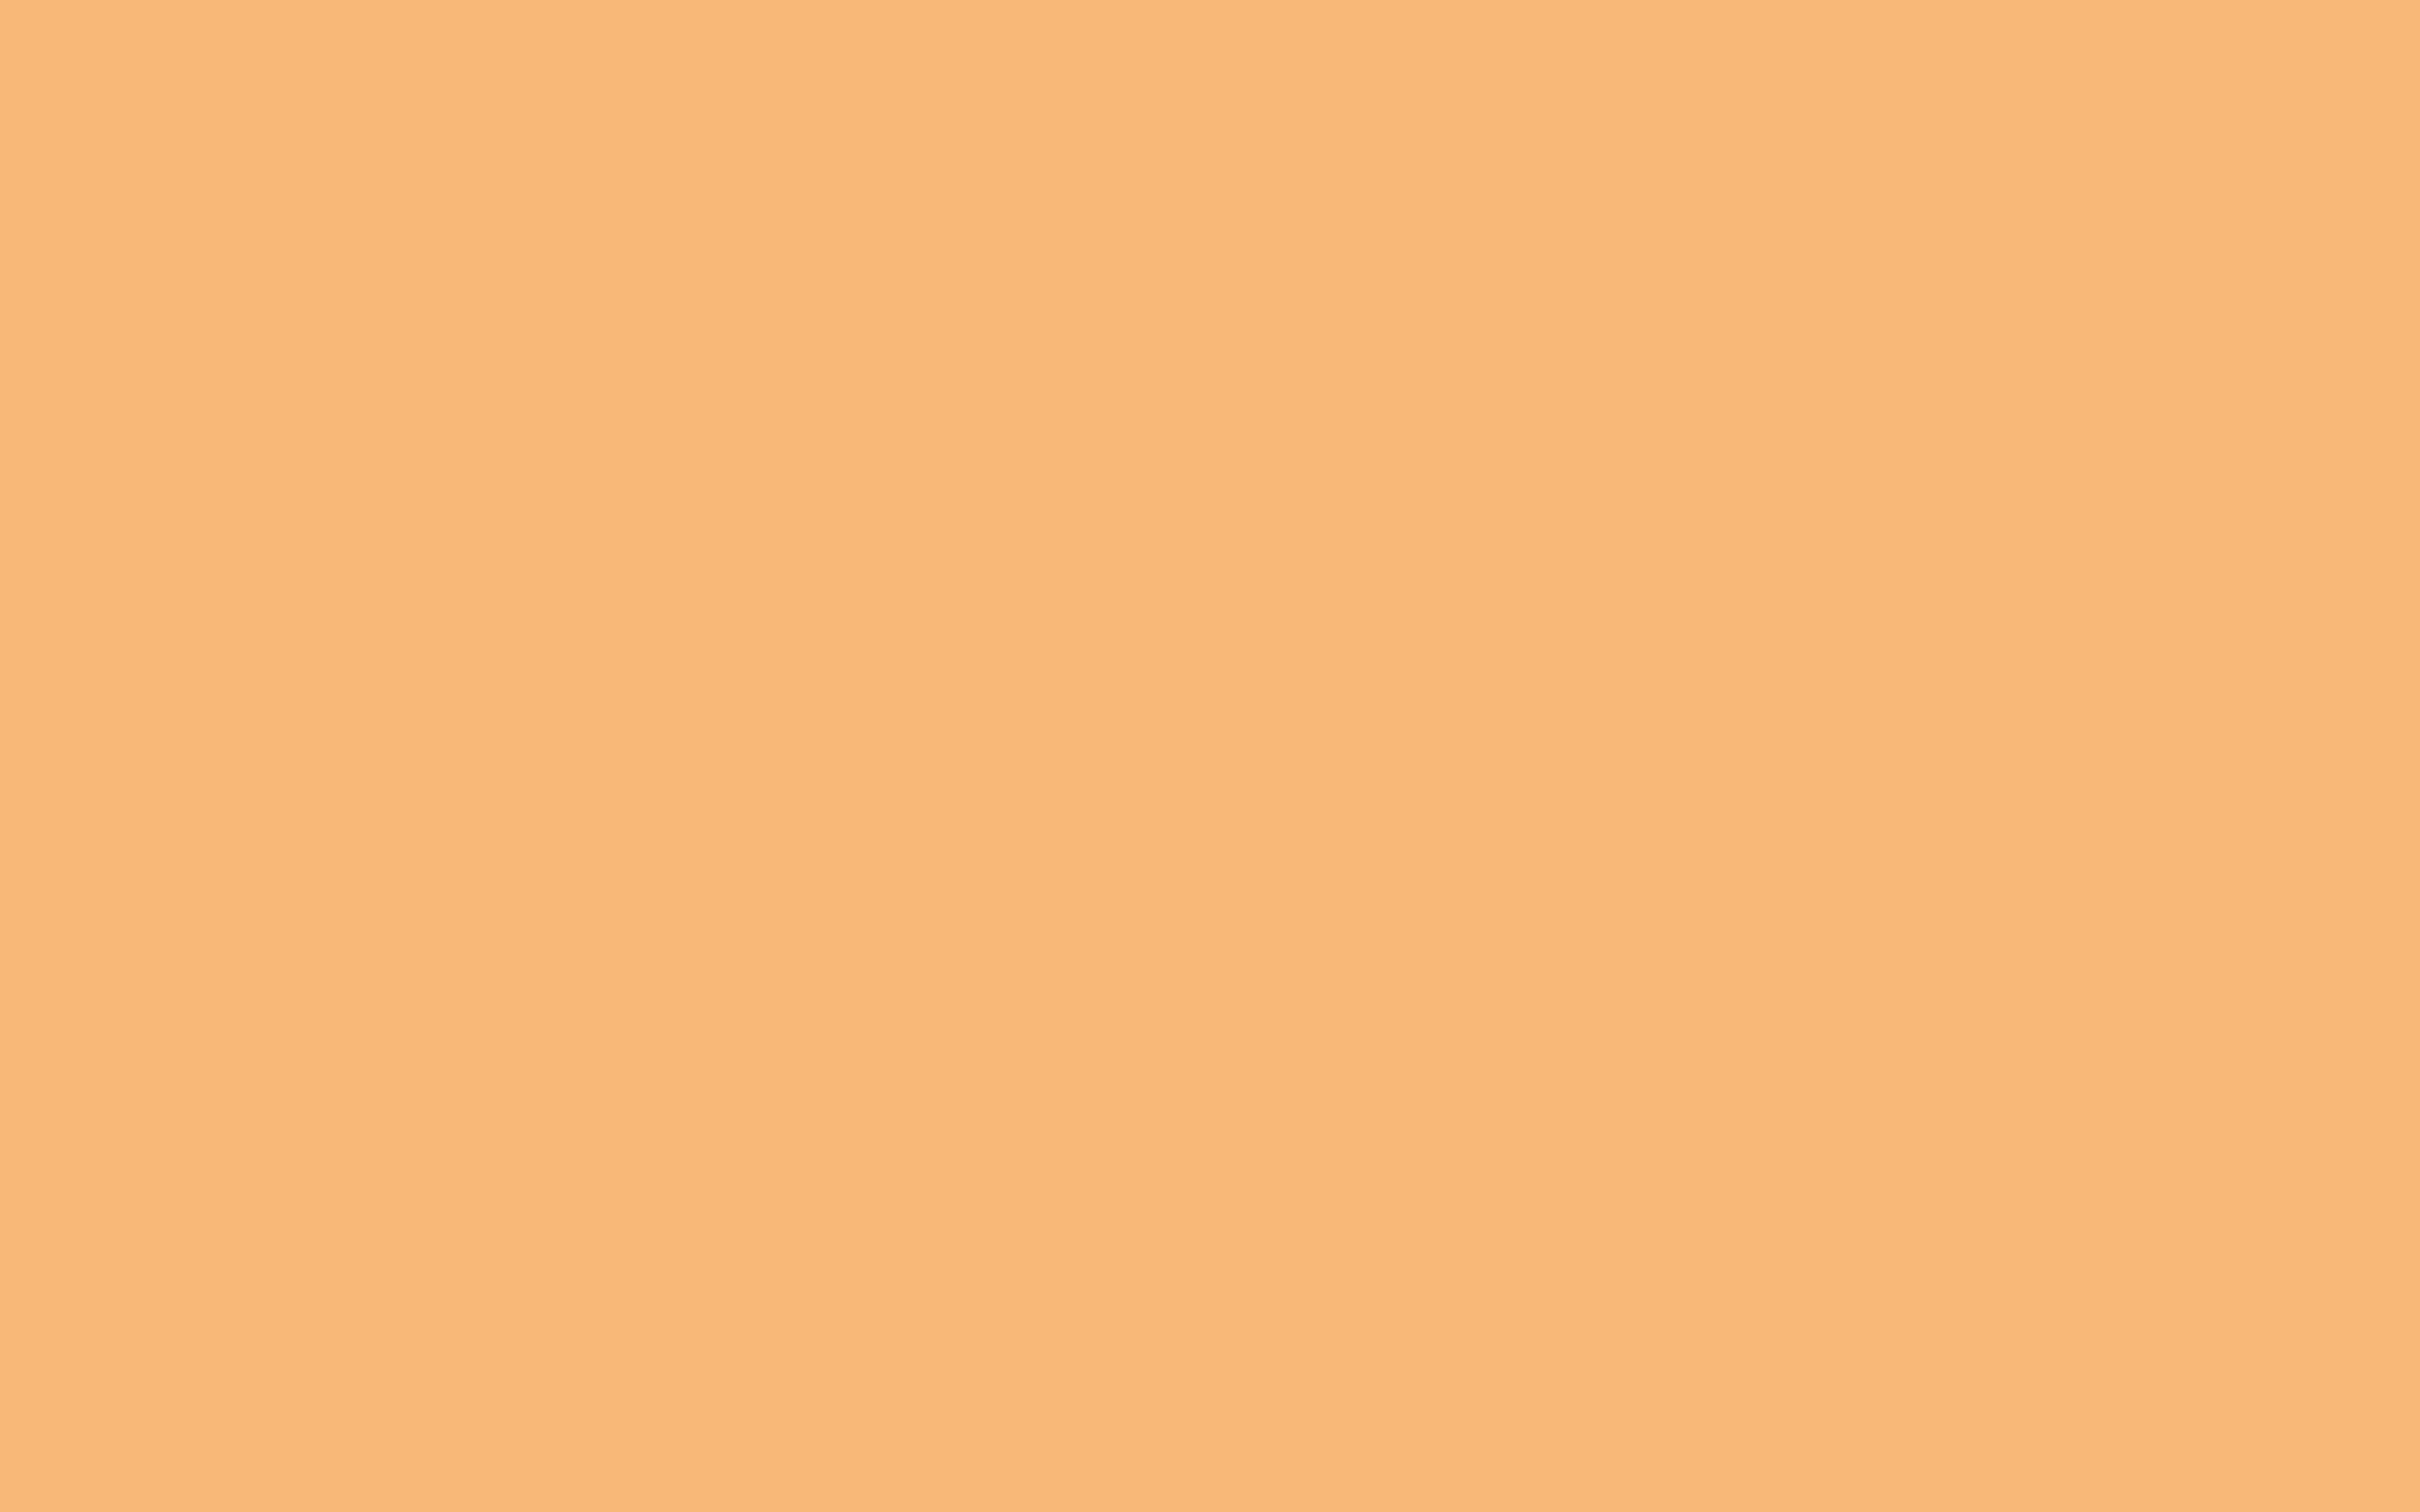 2880x1800 Mellow Apricot Solid Color Background